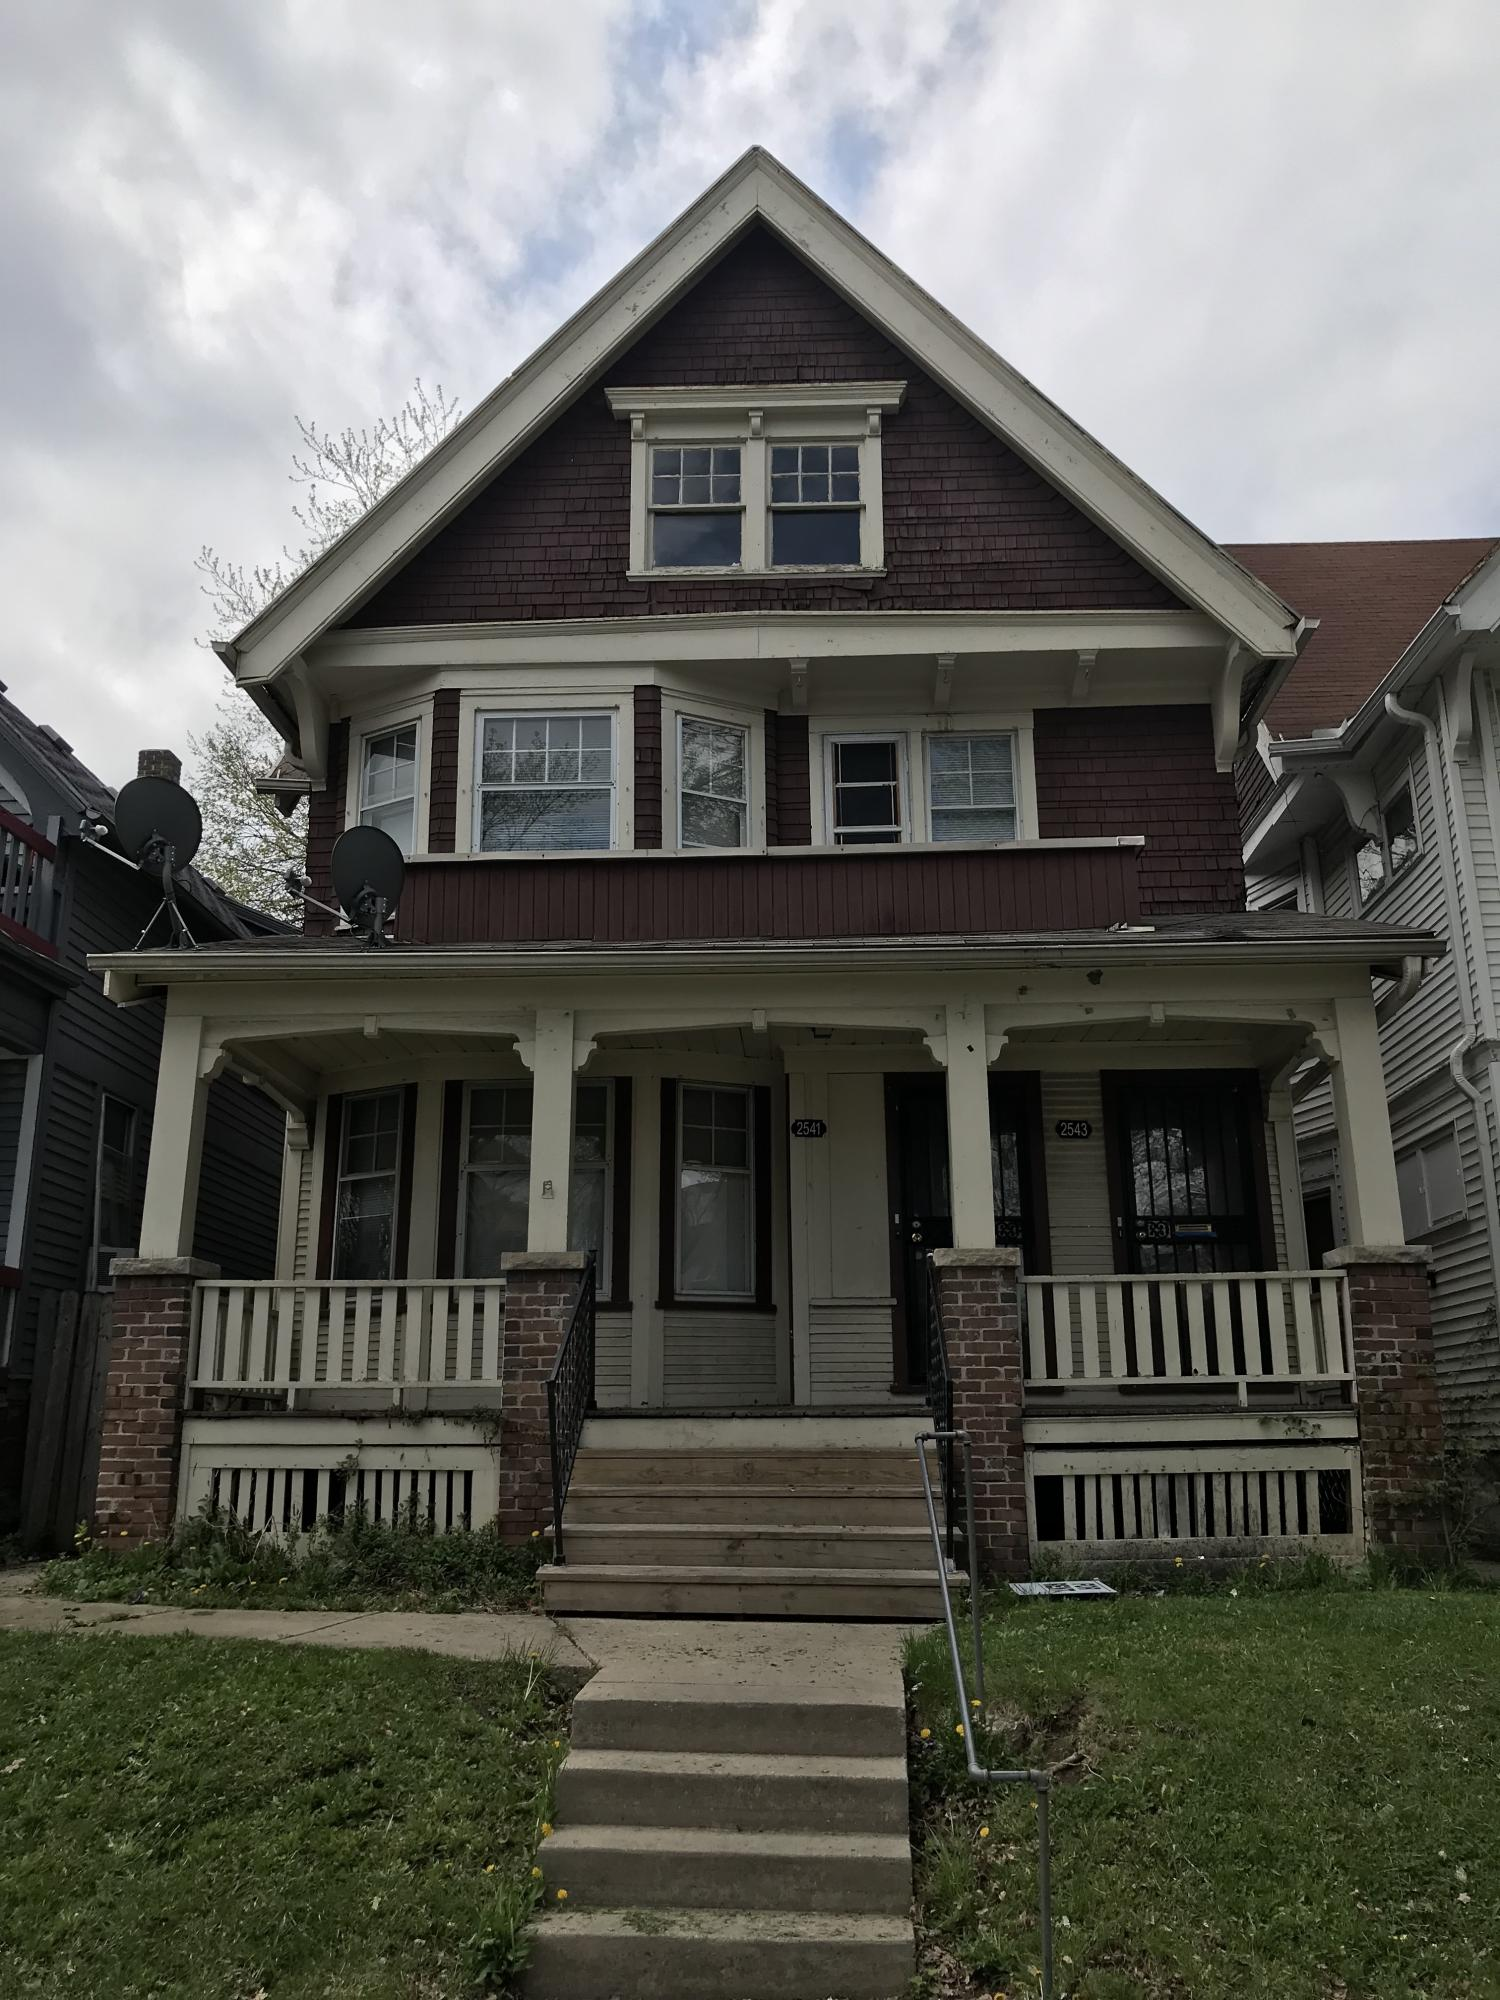 2541 38th St, Milwaukee, Wisconsin 53210, 2 Bedrooms Bedrooms, 5 Rooms Rooms,1 BathroomBathrooms,Two-Family,For Sale,38th St,1,1619854